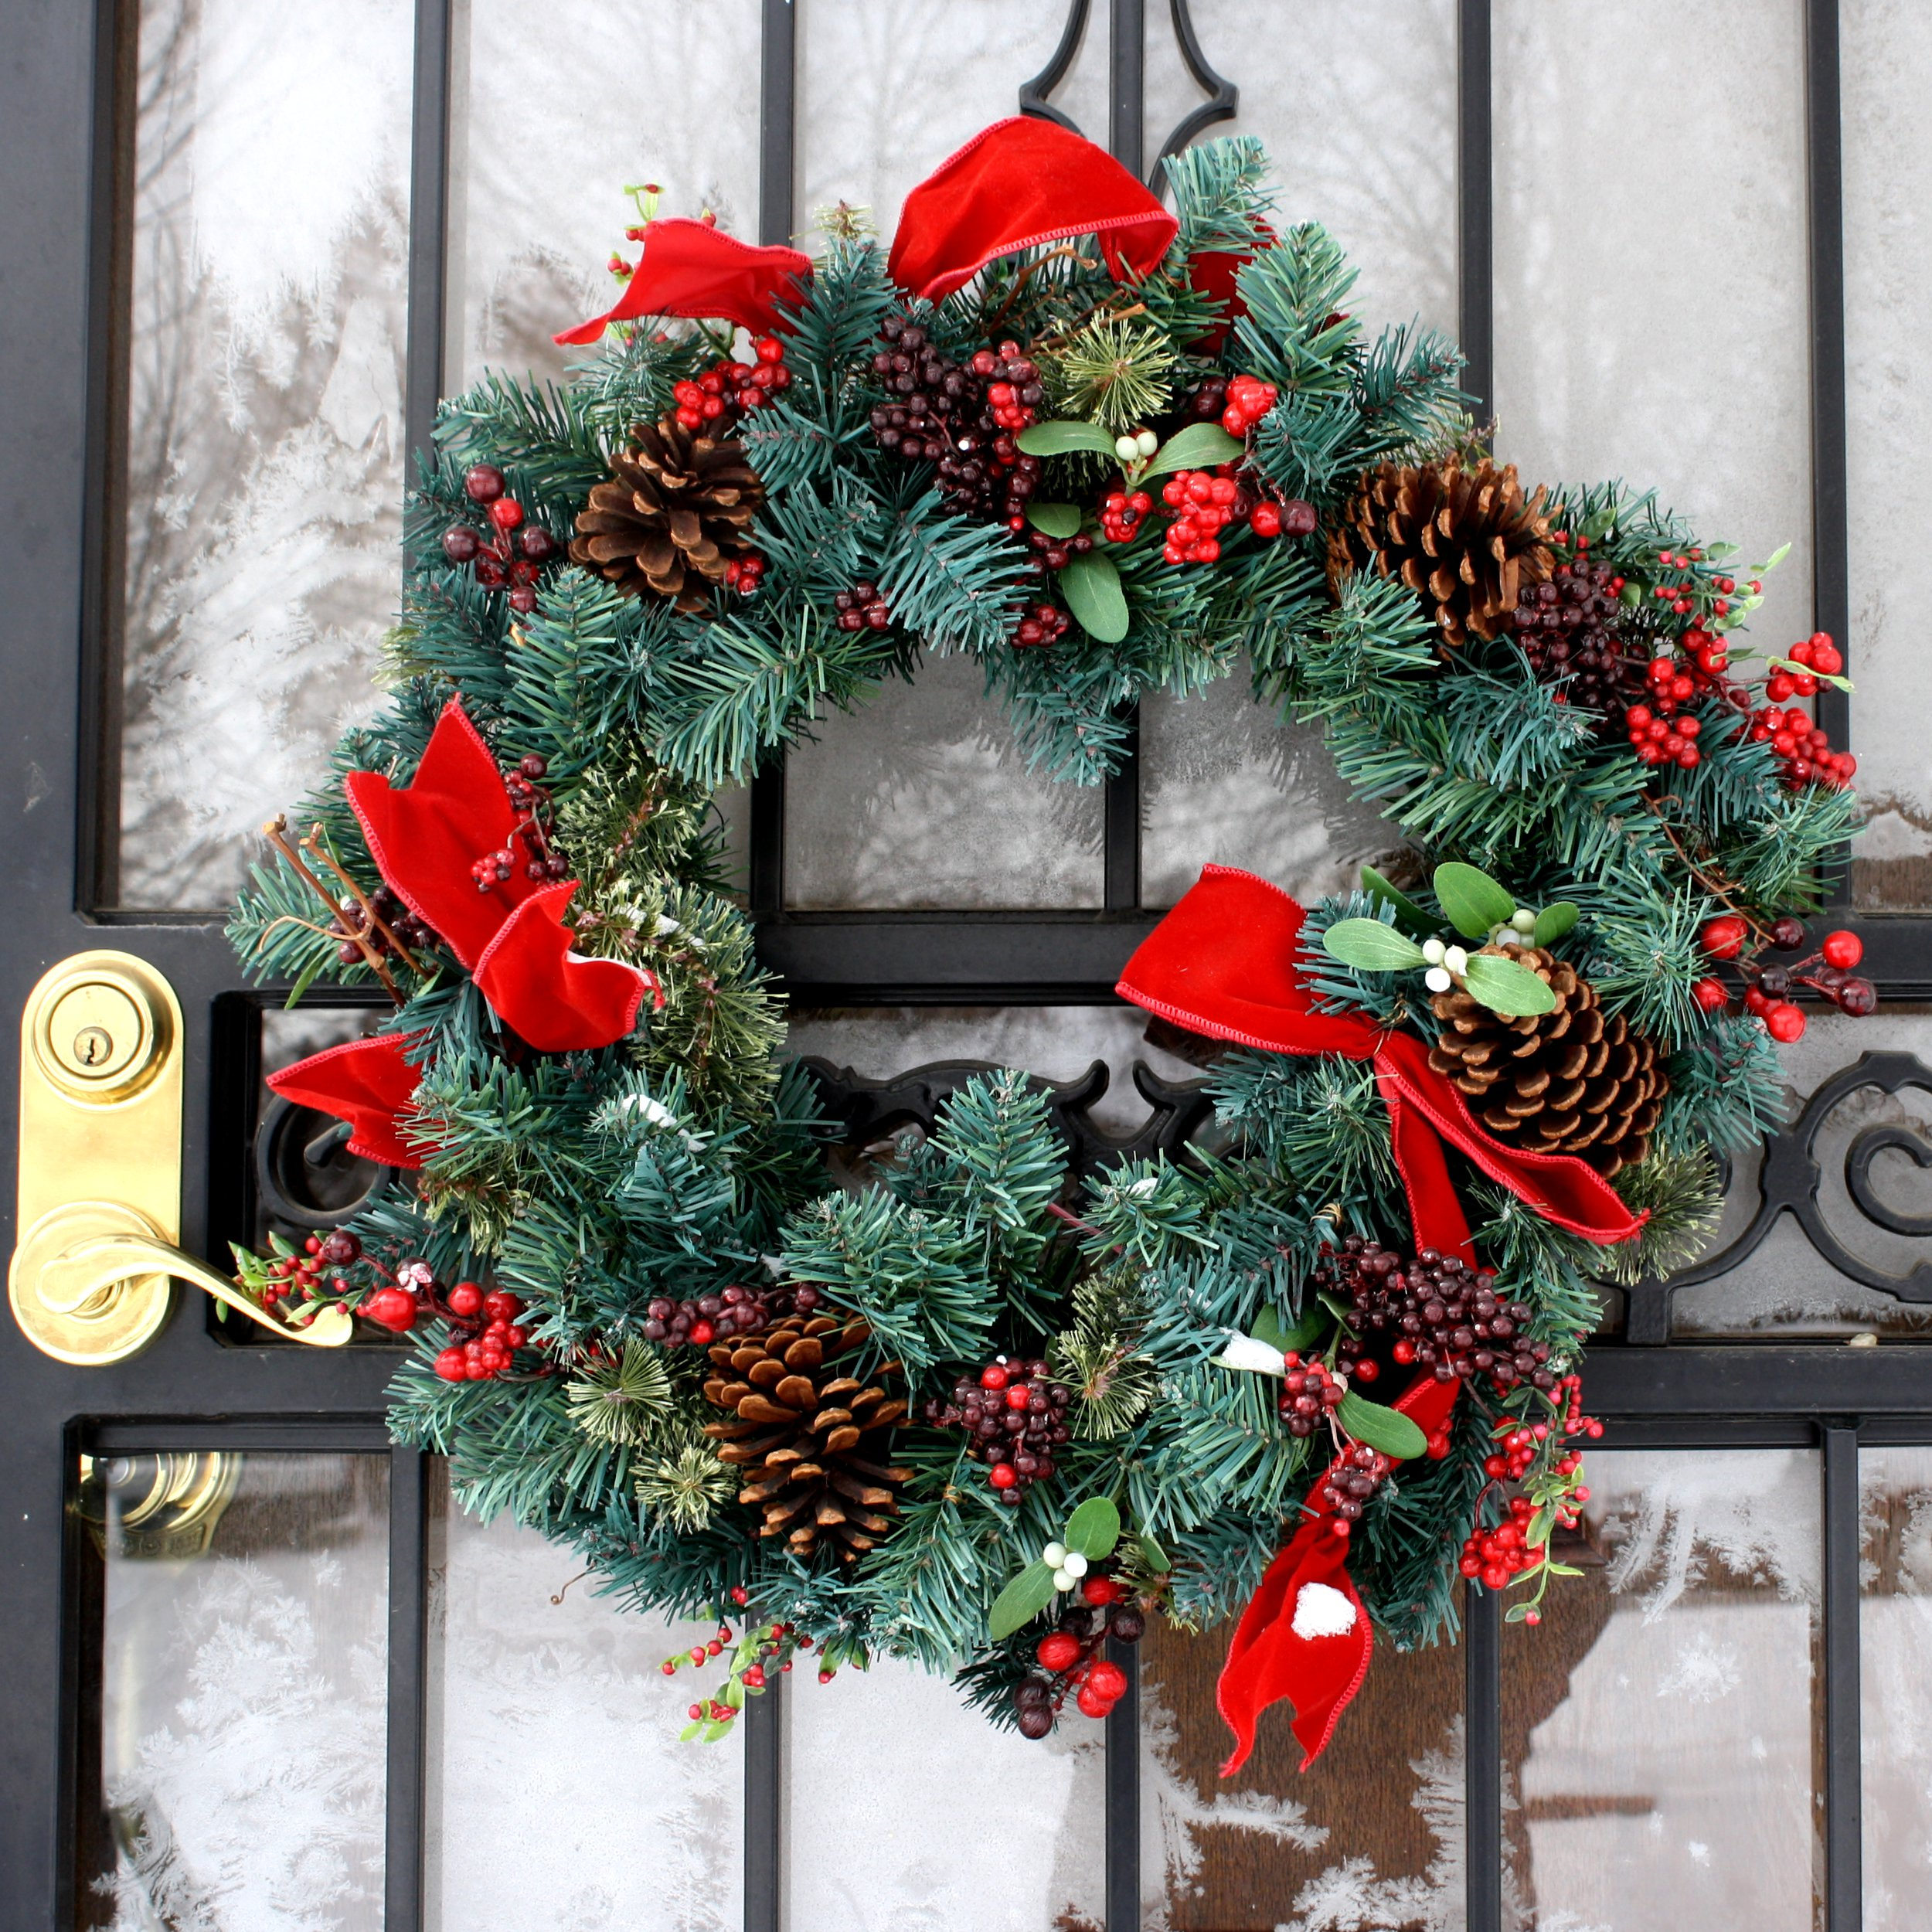 Christmas Wreath Images Free.Christmas Wreath Picture Free Photograph Photos Public